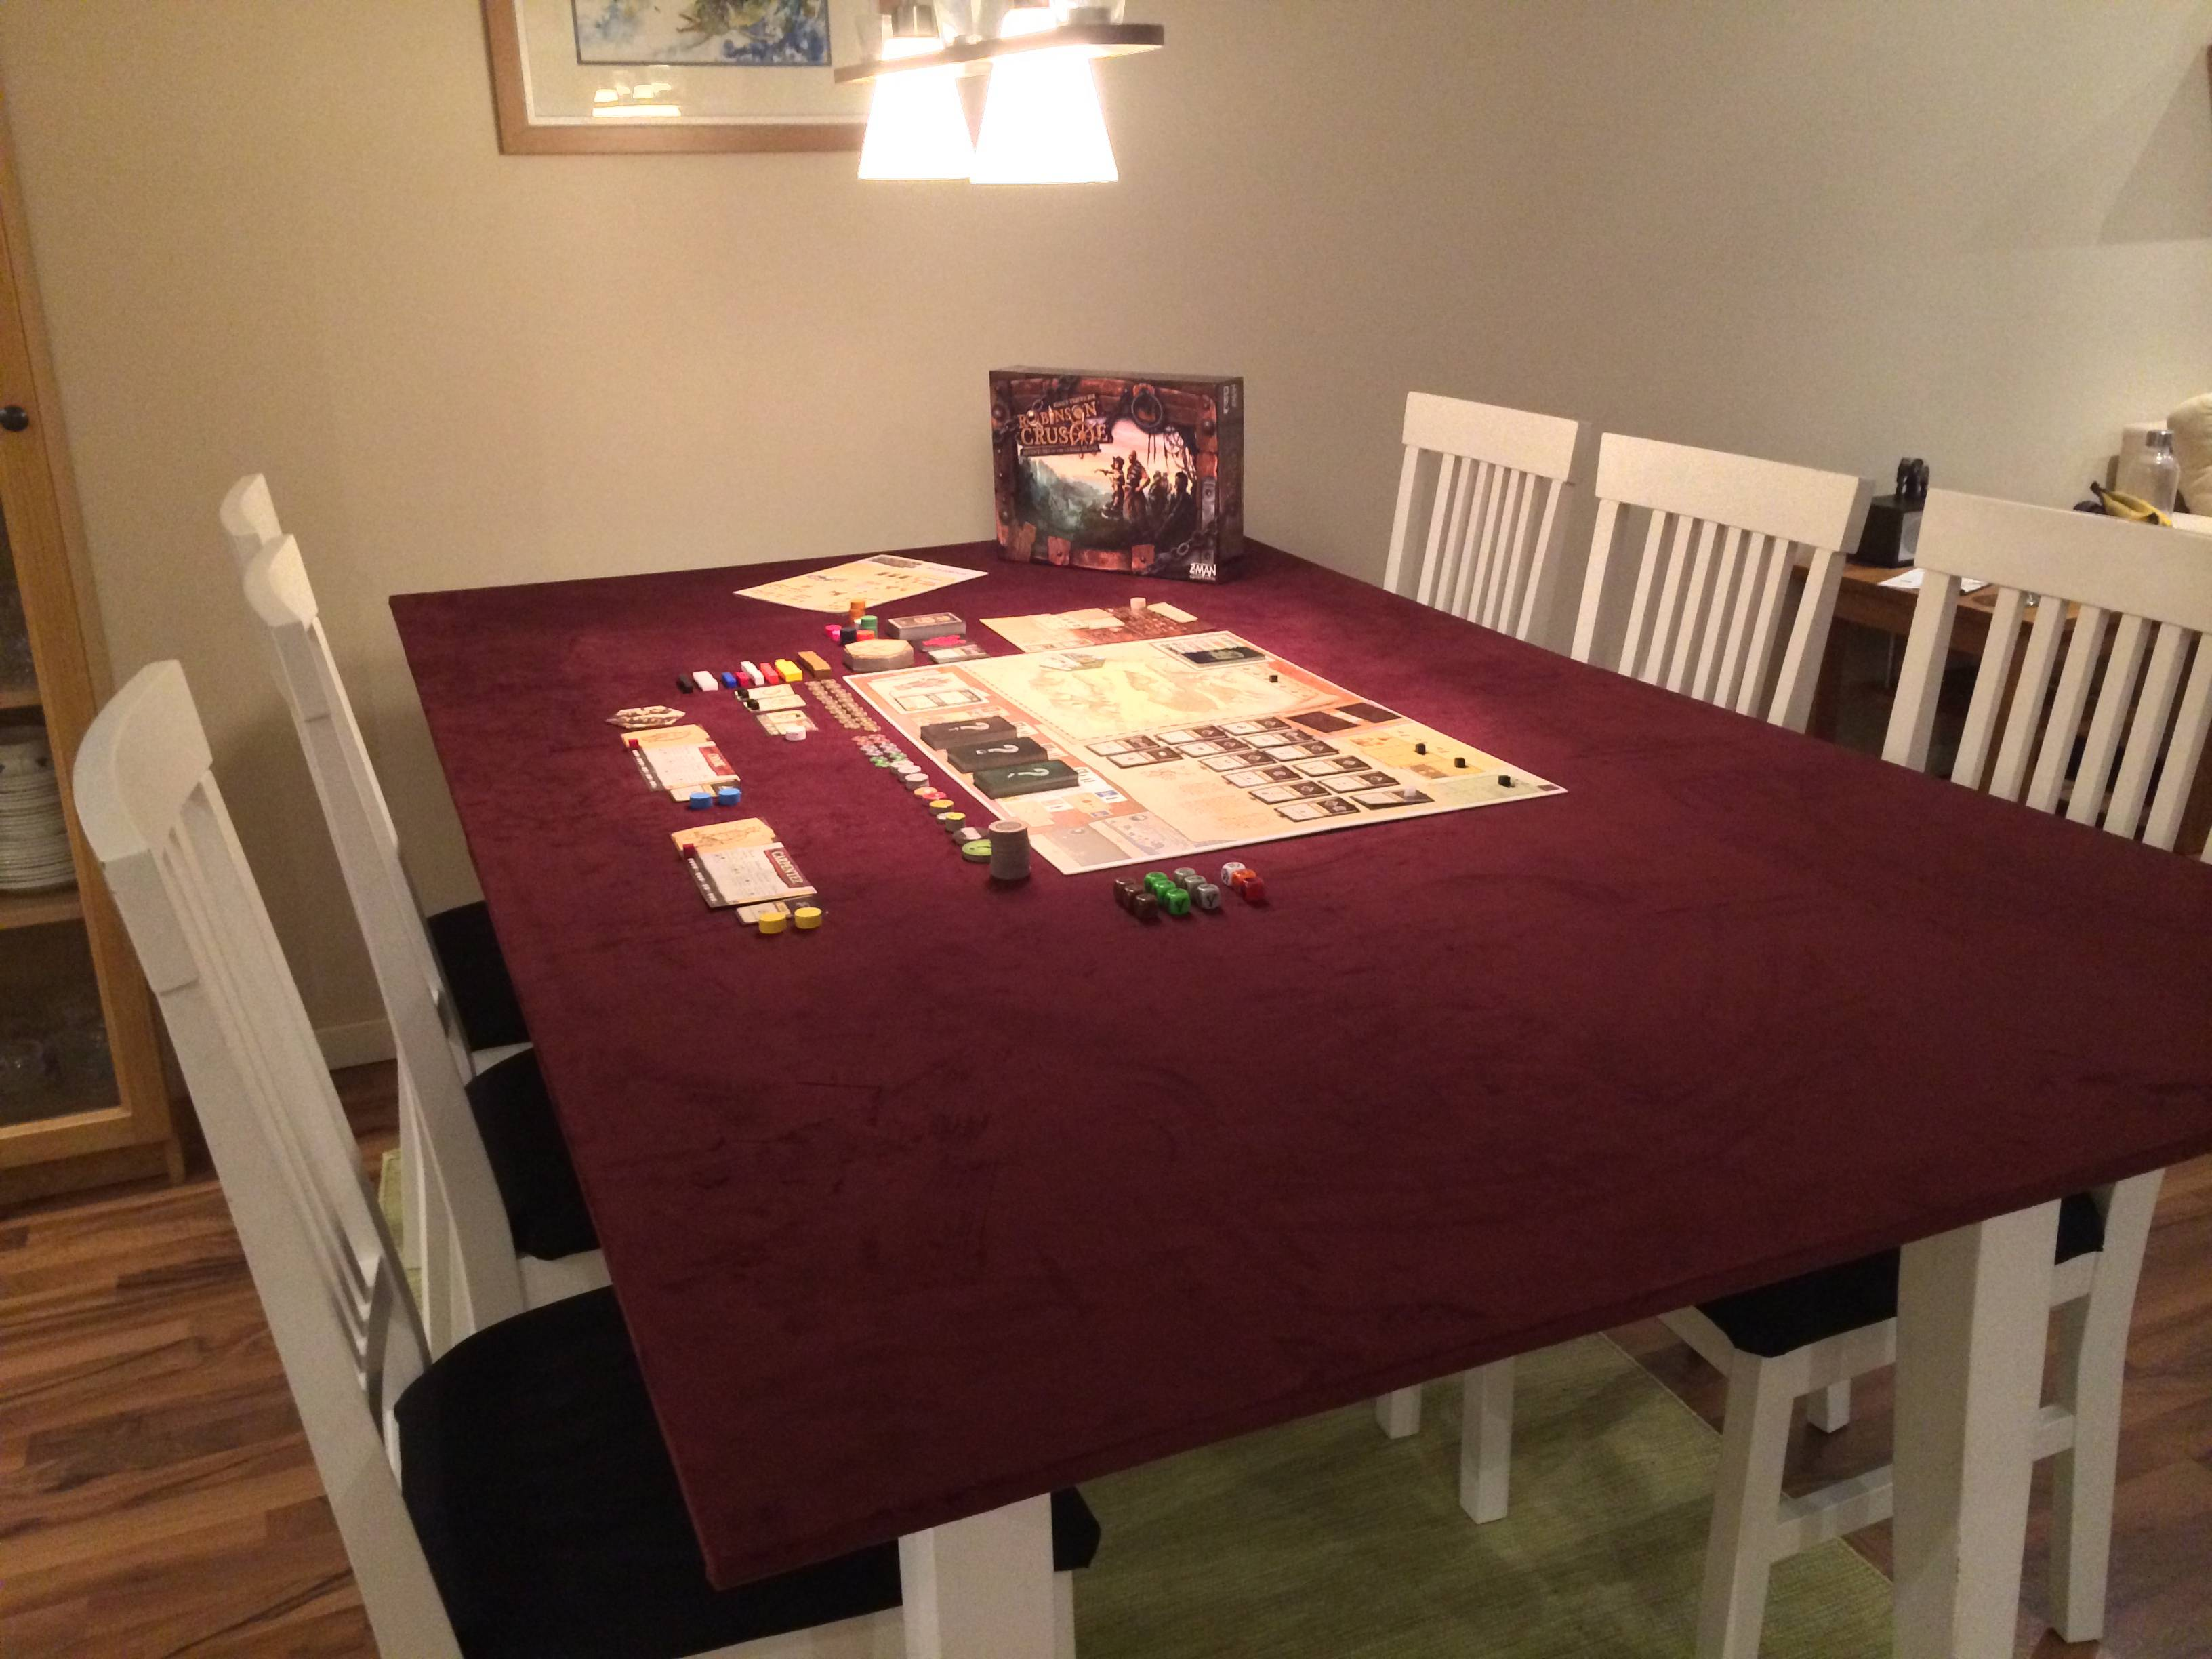 DIY Folding Board Game Table BoardGameGeek BoardGameGeek - Cheap board game table